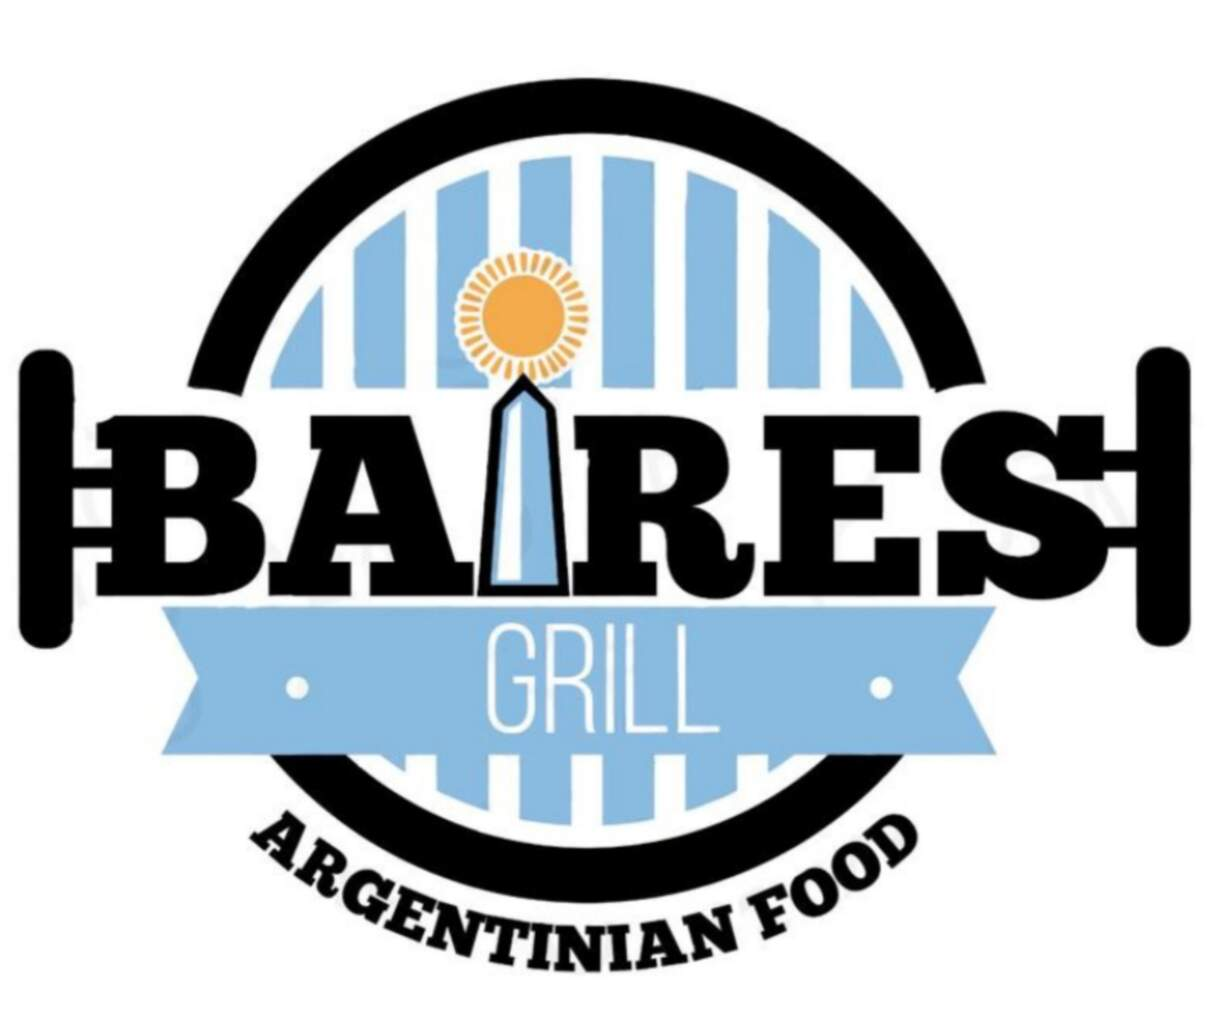 Baire's Grill